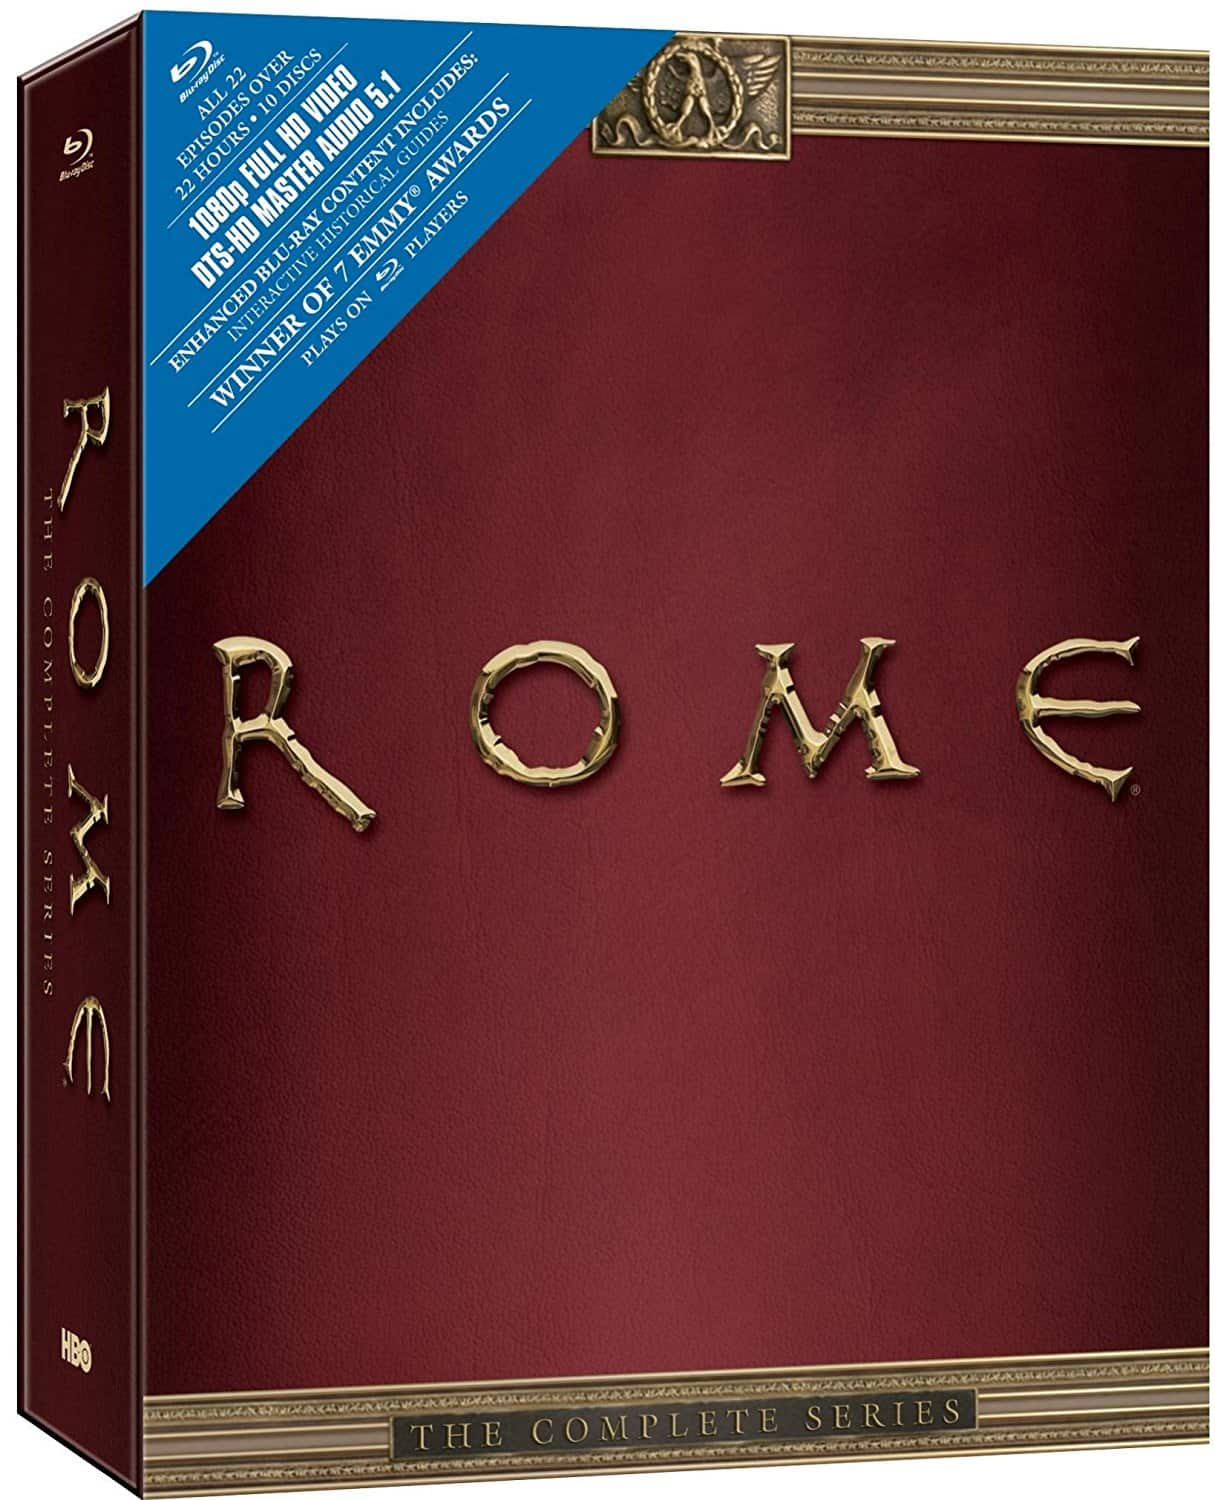 Rome: The Complete Series (Blu-ray) $29.99 + Free Shipping via Amazon